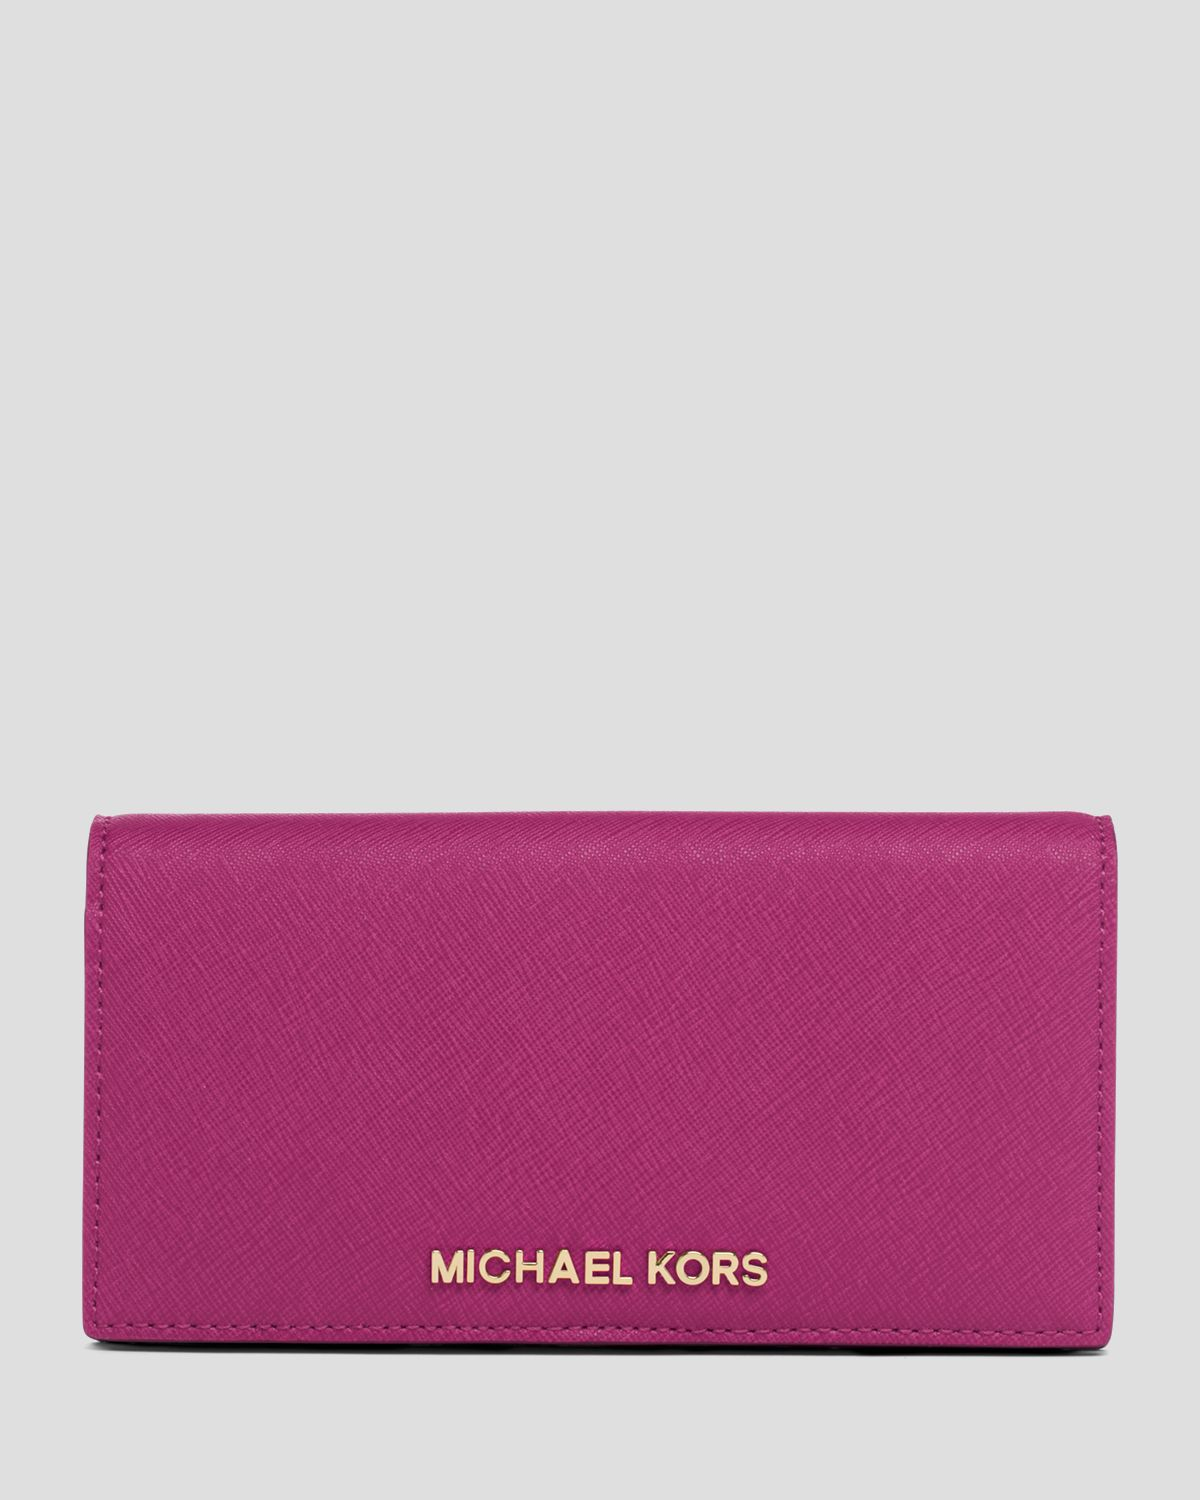 318cc80b533f ... Michael michael kors Wallet - Large Slim Continental Snap in ...